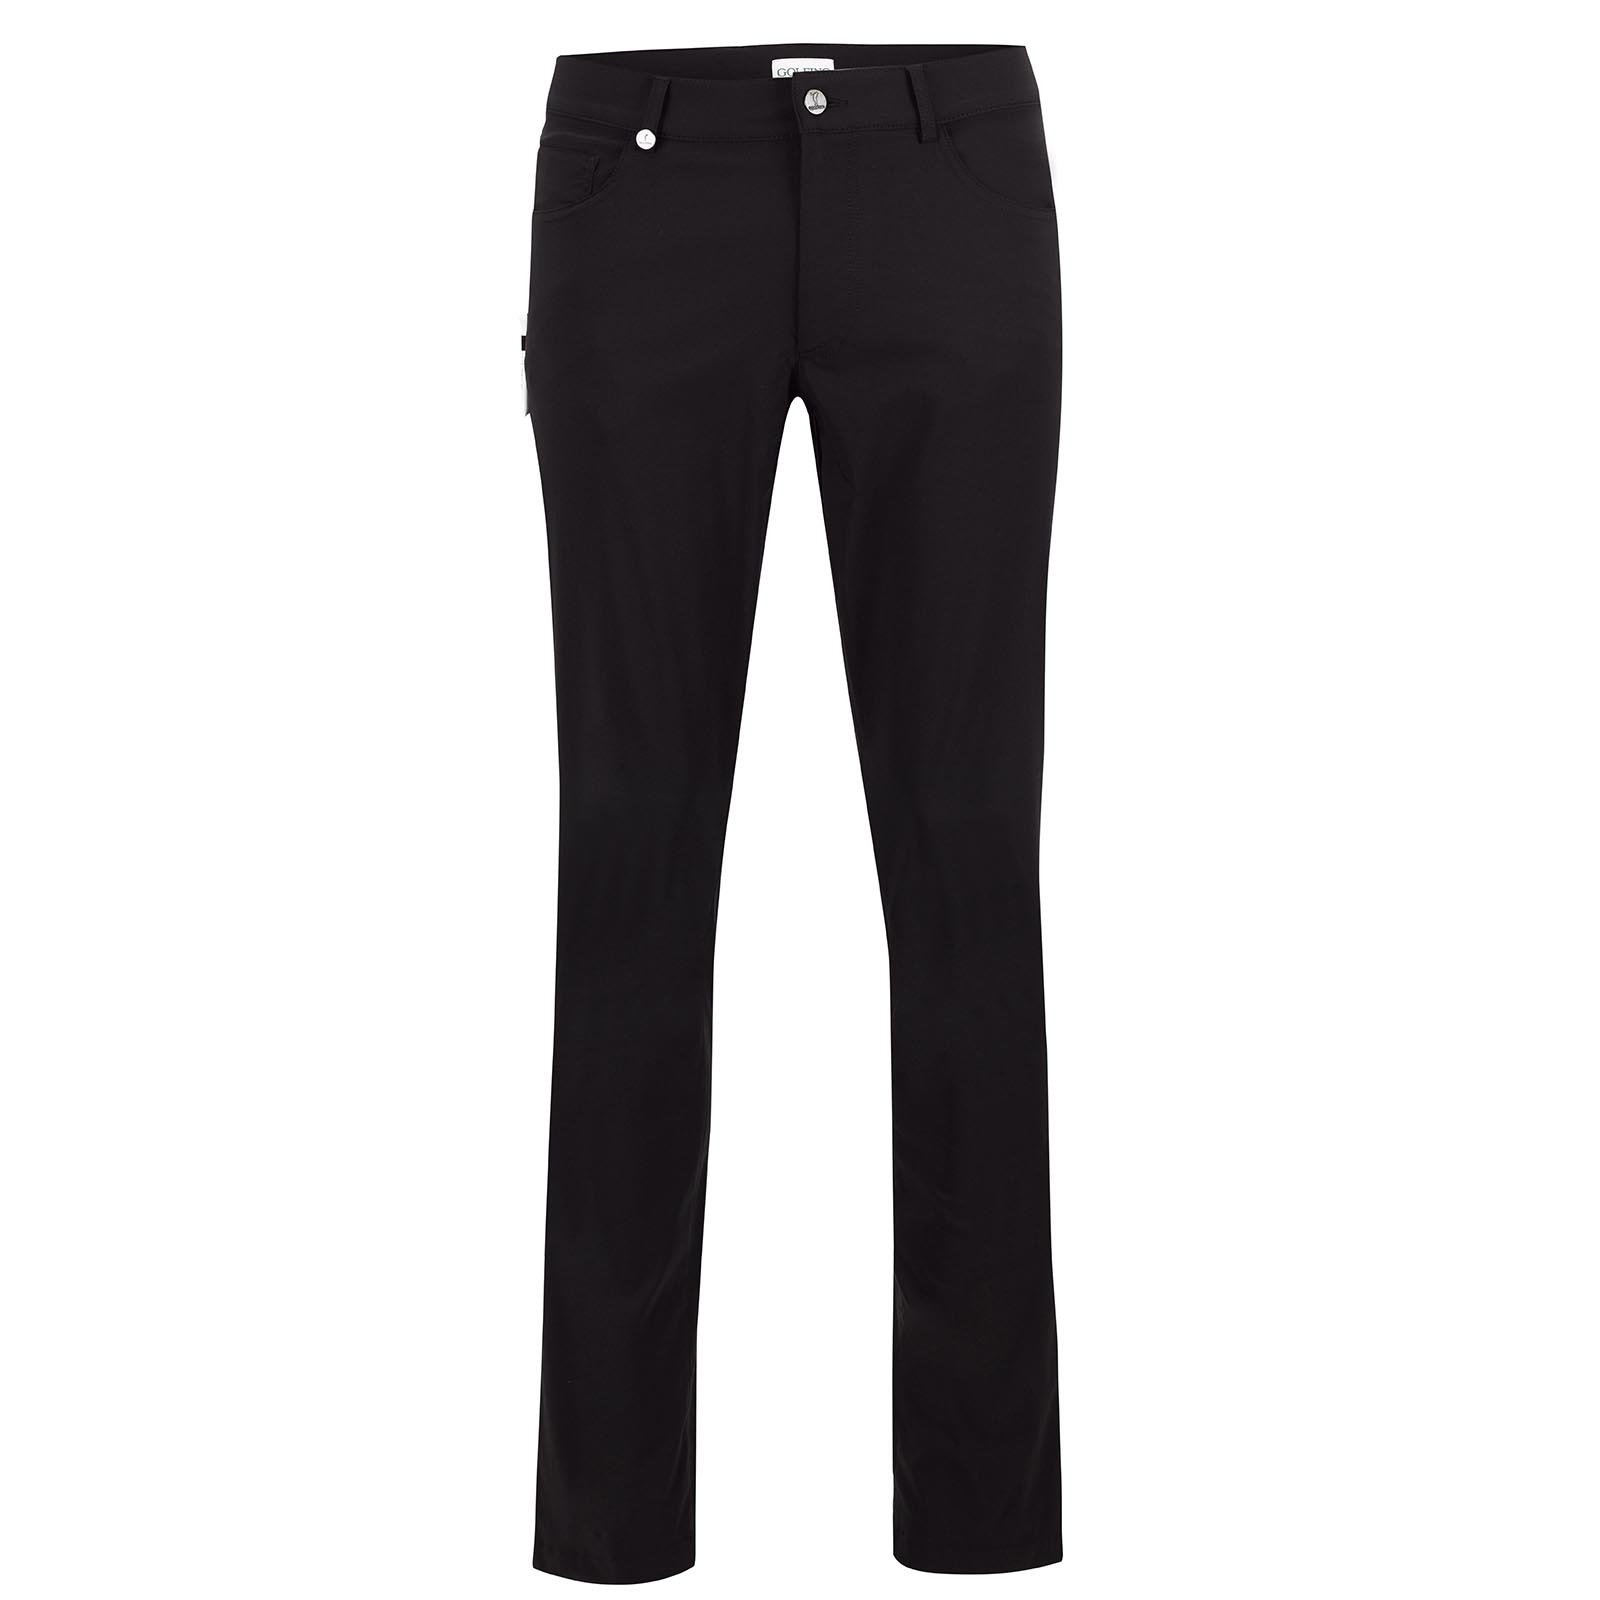 Men's performance golf trousers with UV protection in five-pocket style